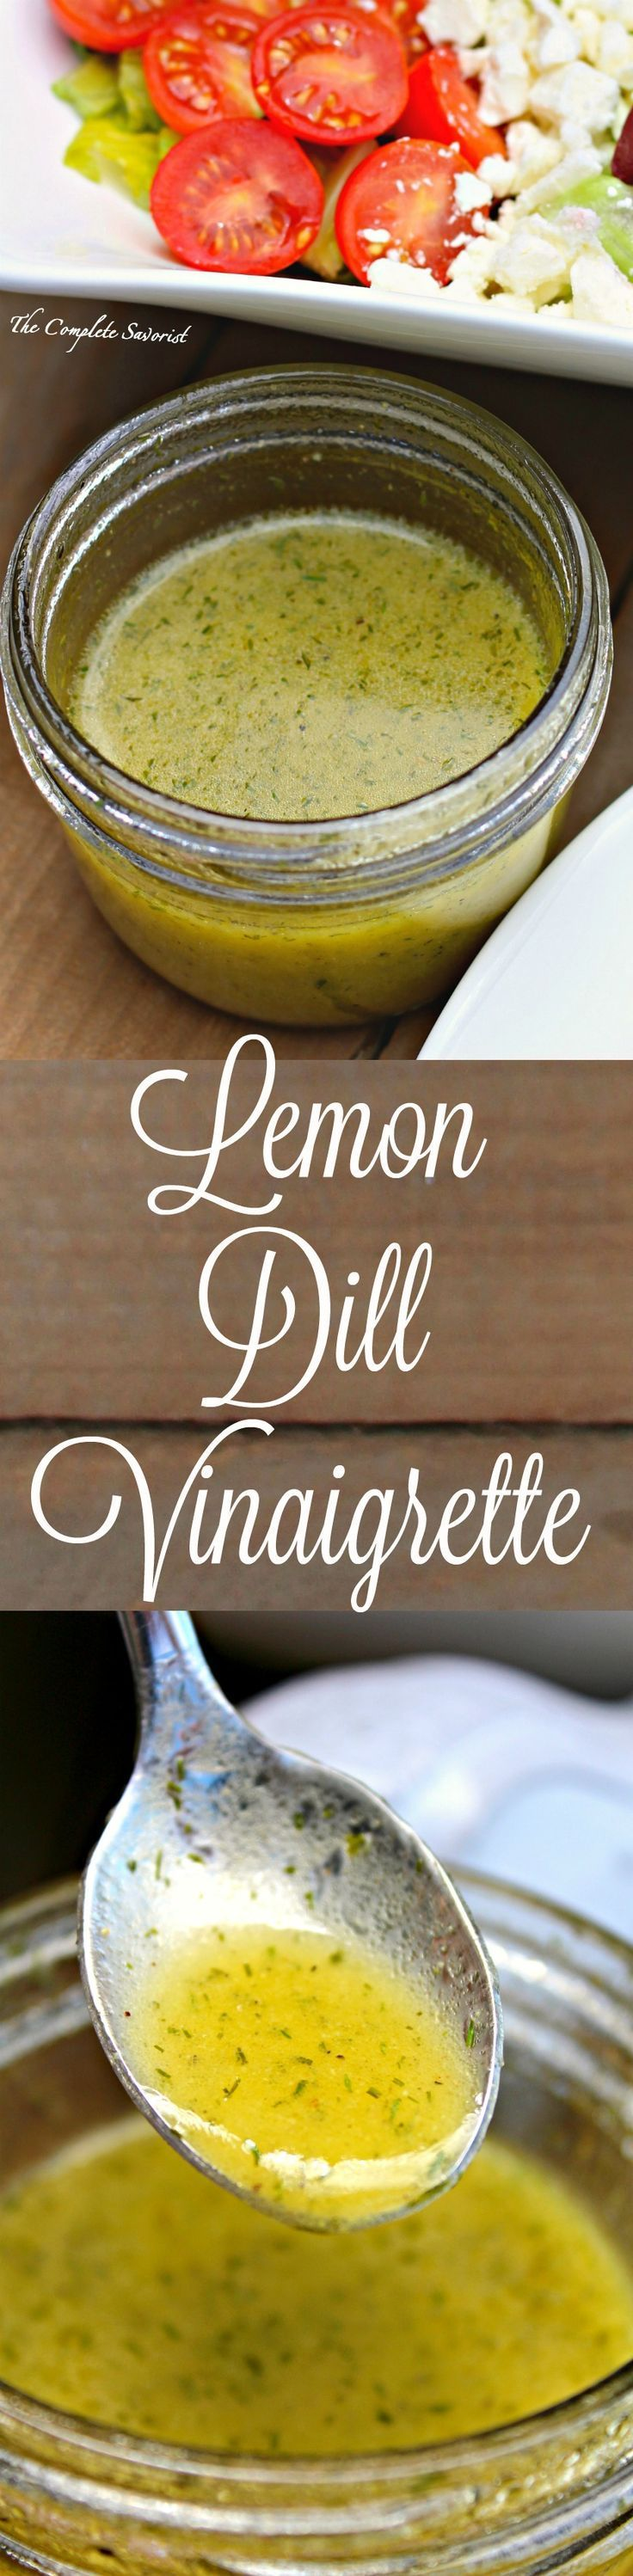 Lemon Dill Vinaigrette ~ Fresh and light, lemon dill vinaigrette is the perfect dressing for any salad with its herbaceous and citrus notes